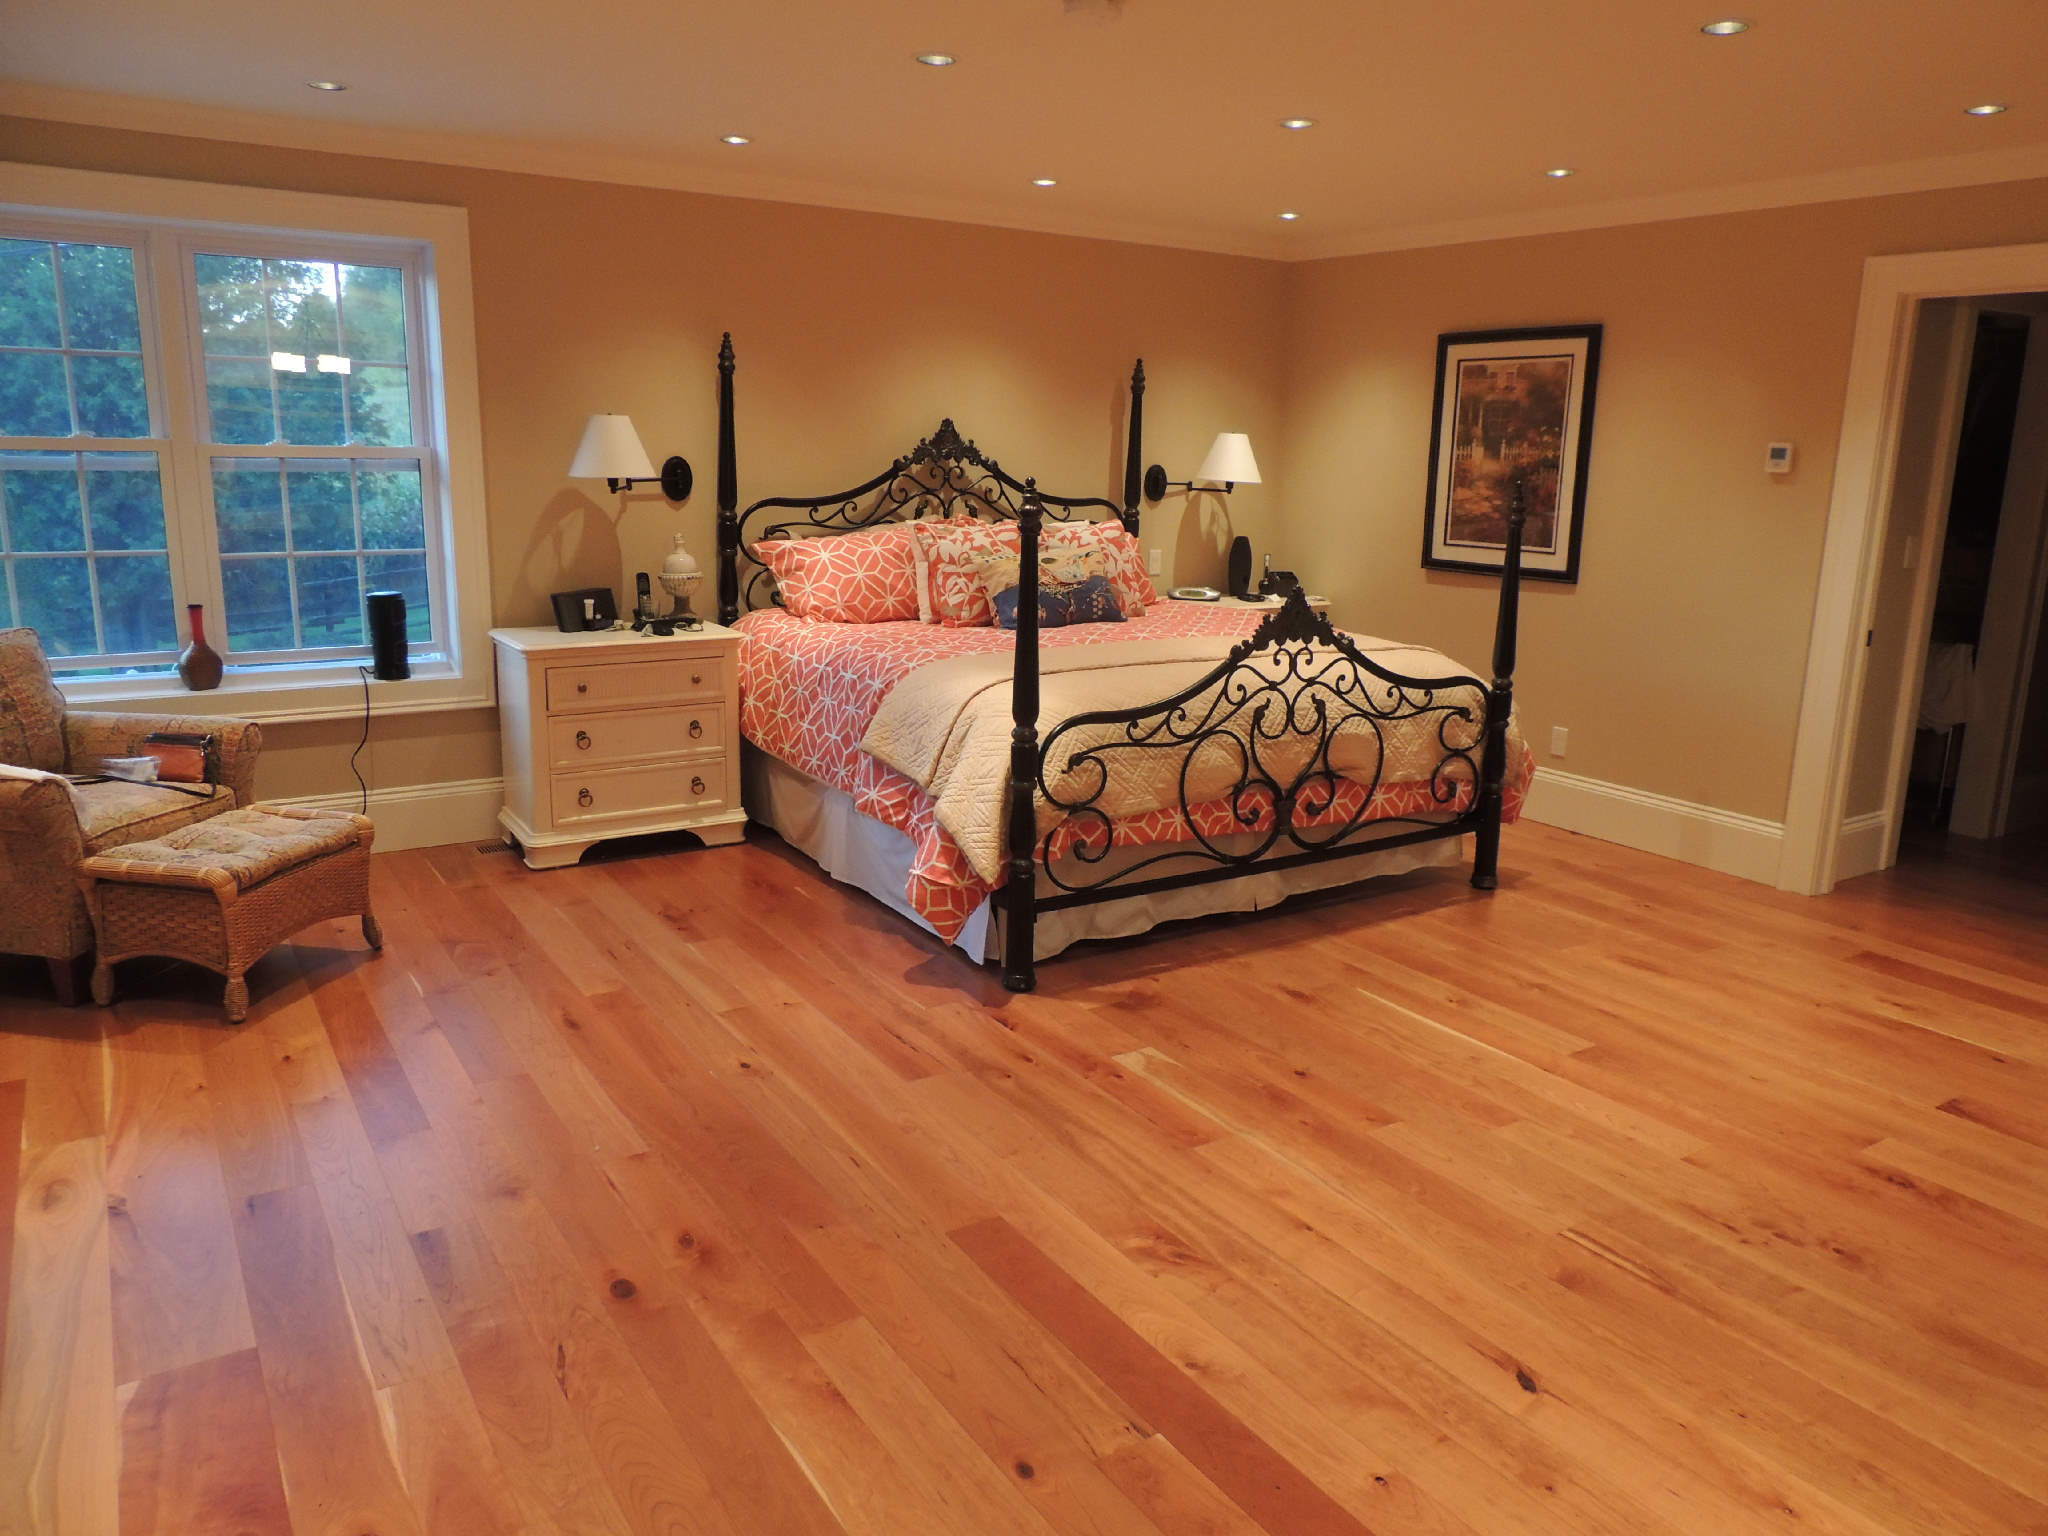 Cherry Hardwood Flooring hardwood flooring jatobabrazilian cherry builddirect Cherry Wood Flooring